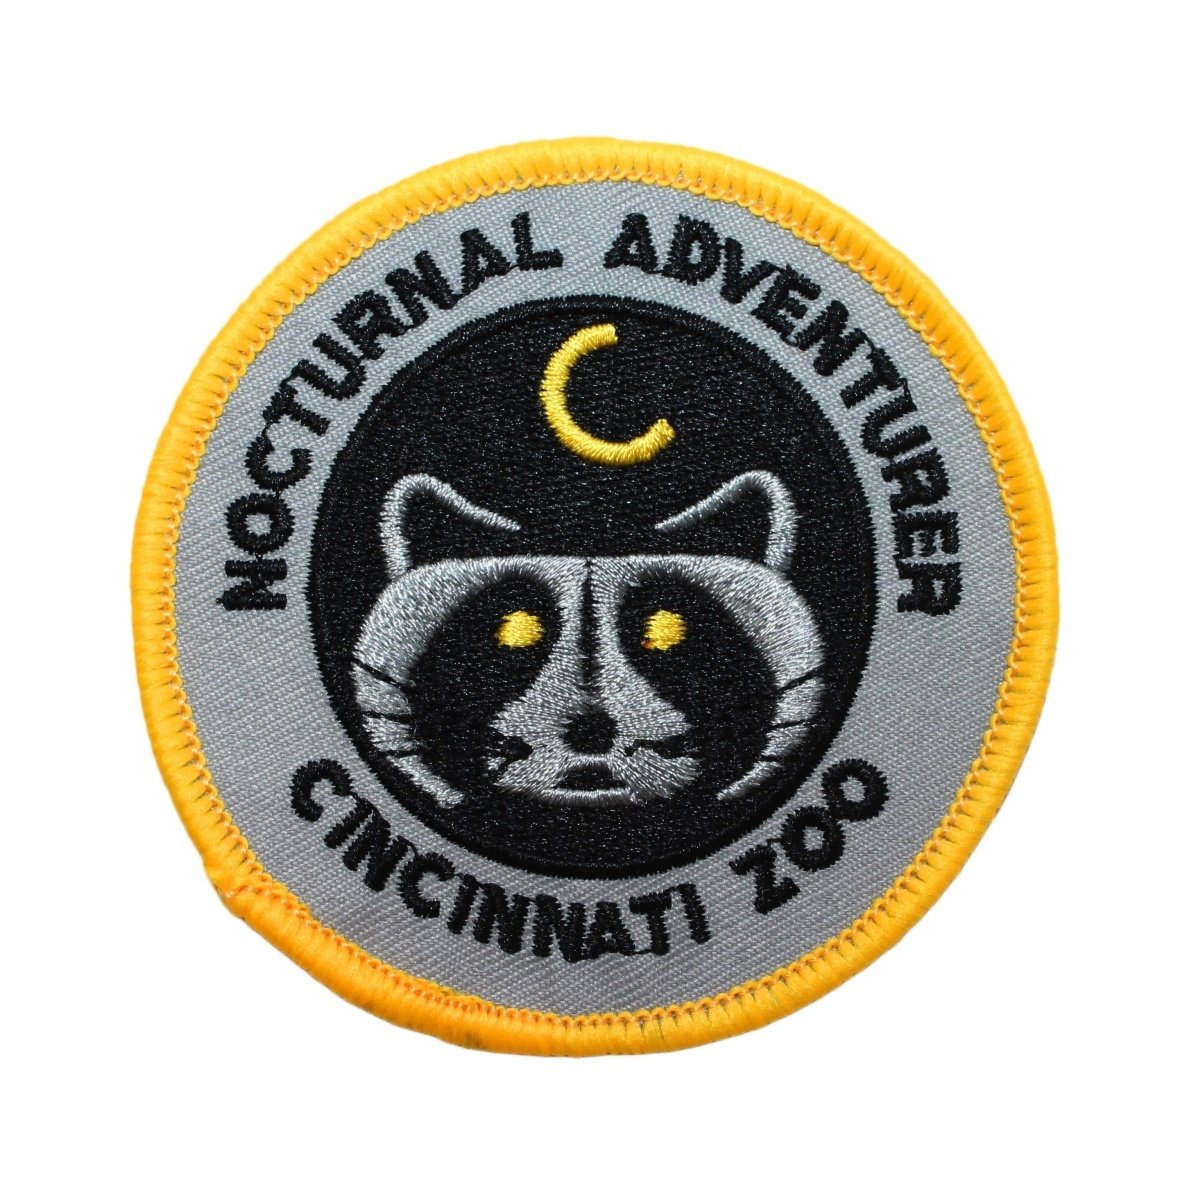 Cincinnati Zoo Nocturnal Adventure Patch Travel Embroidered Iron On Applique